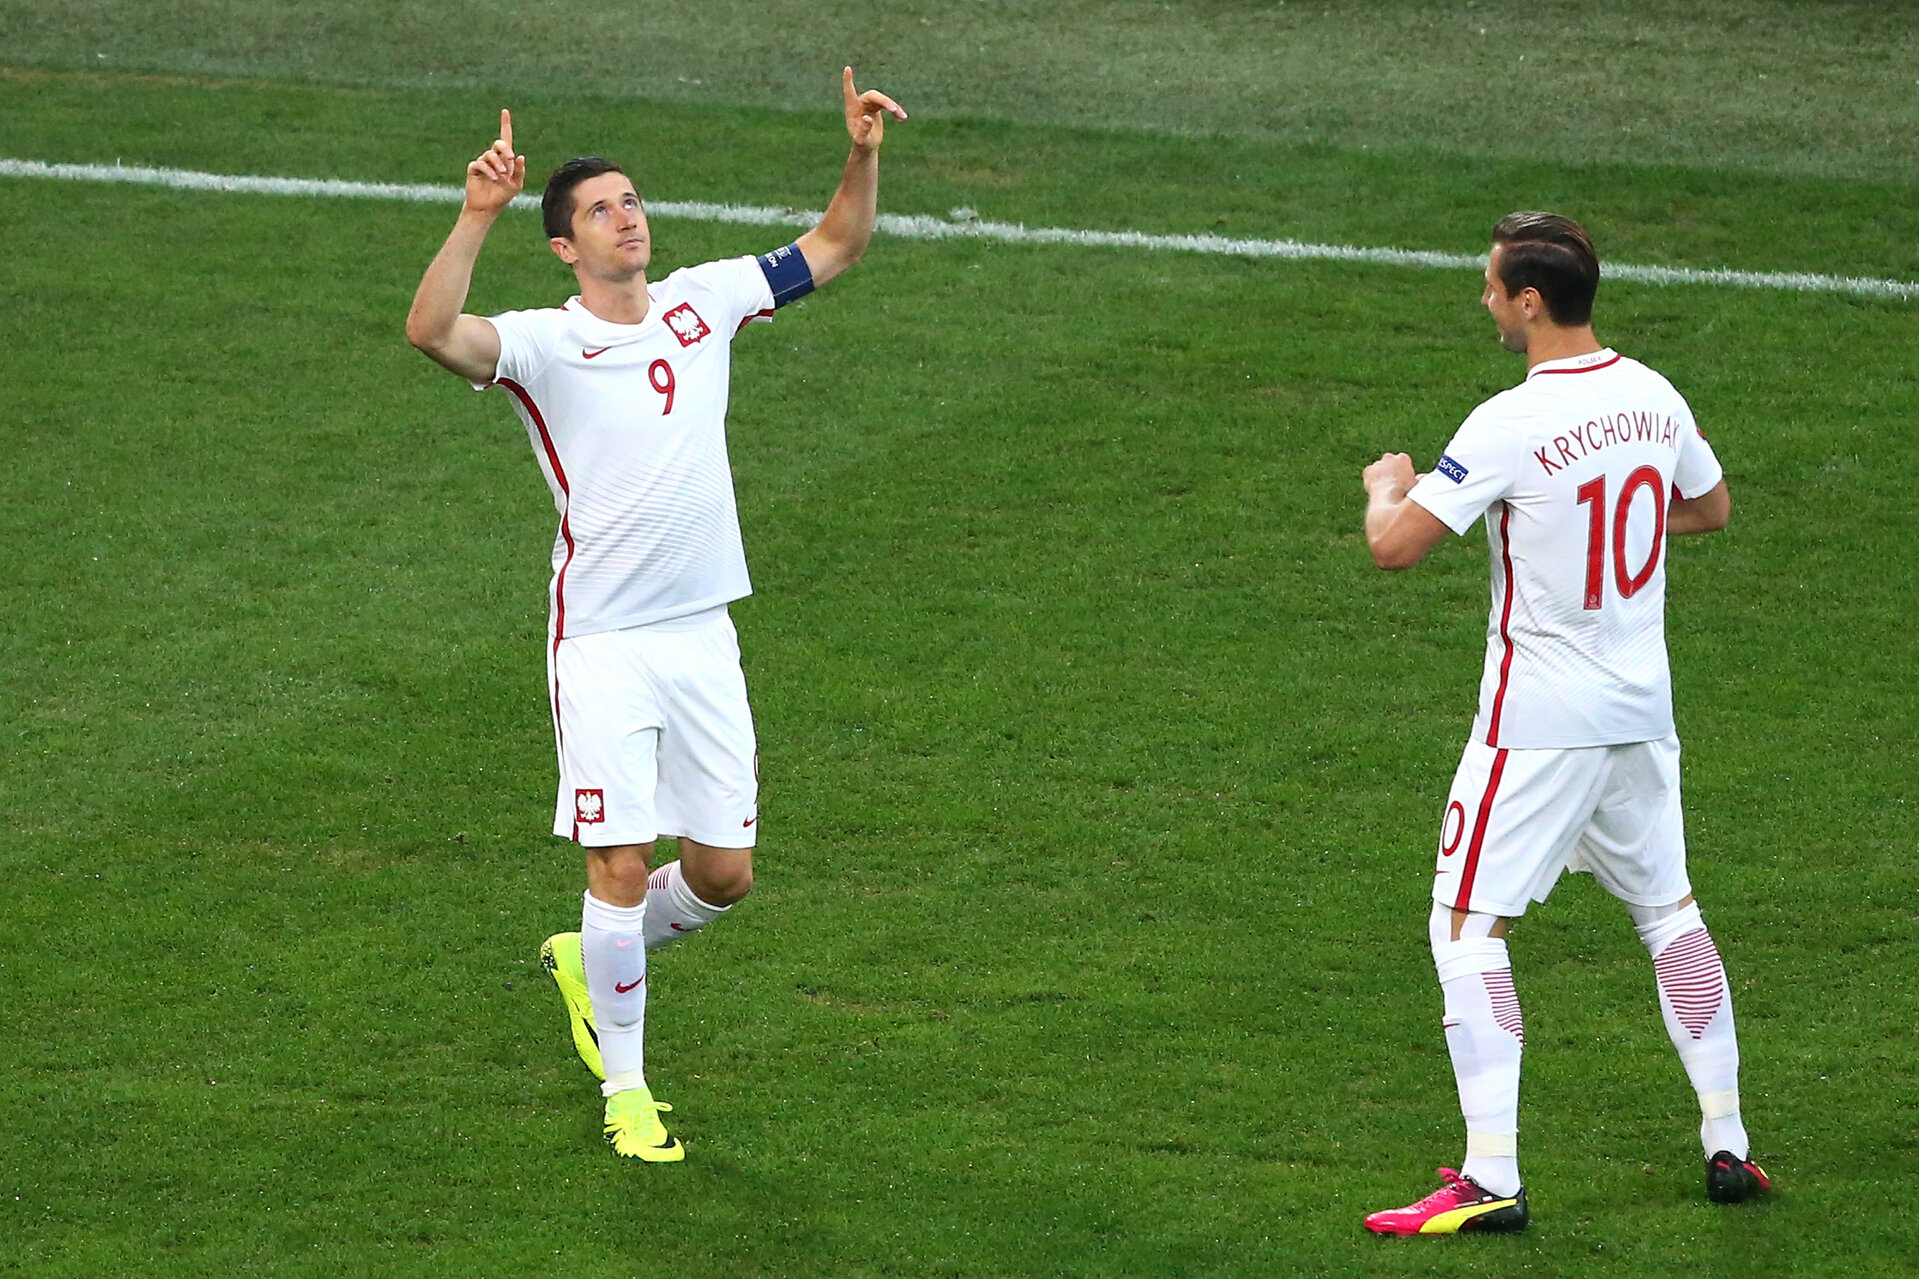 MARSEILLE, FRANCE - JUNE 30:  Robert Lewandowski (L) of Poland celebrates scoring the opening goal with his team mate Grzegorz Krychowiak (R) during the UEFA EURO 2016 quarter final match between Poland and Portugal at Stade Velodrome on June 30, 2016 in Marseille, France.  (Photo by Alex Livesey/Getty Images)